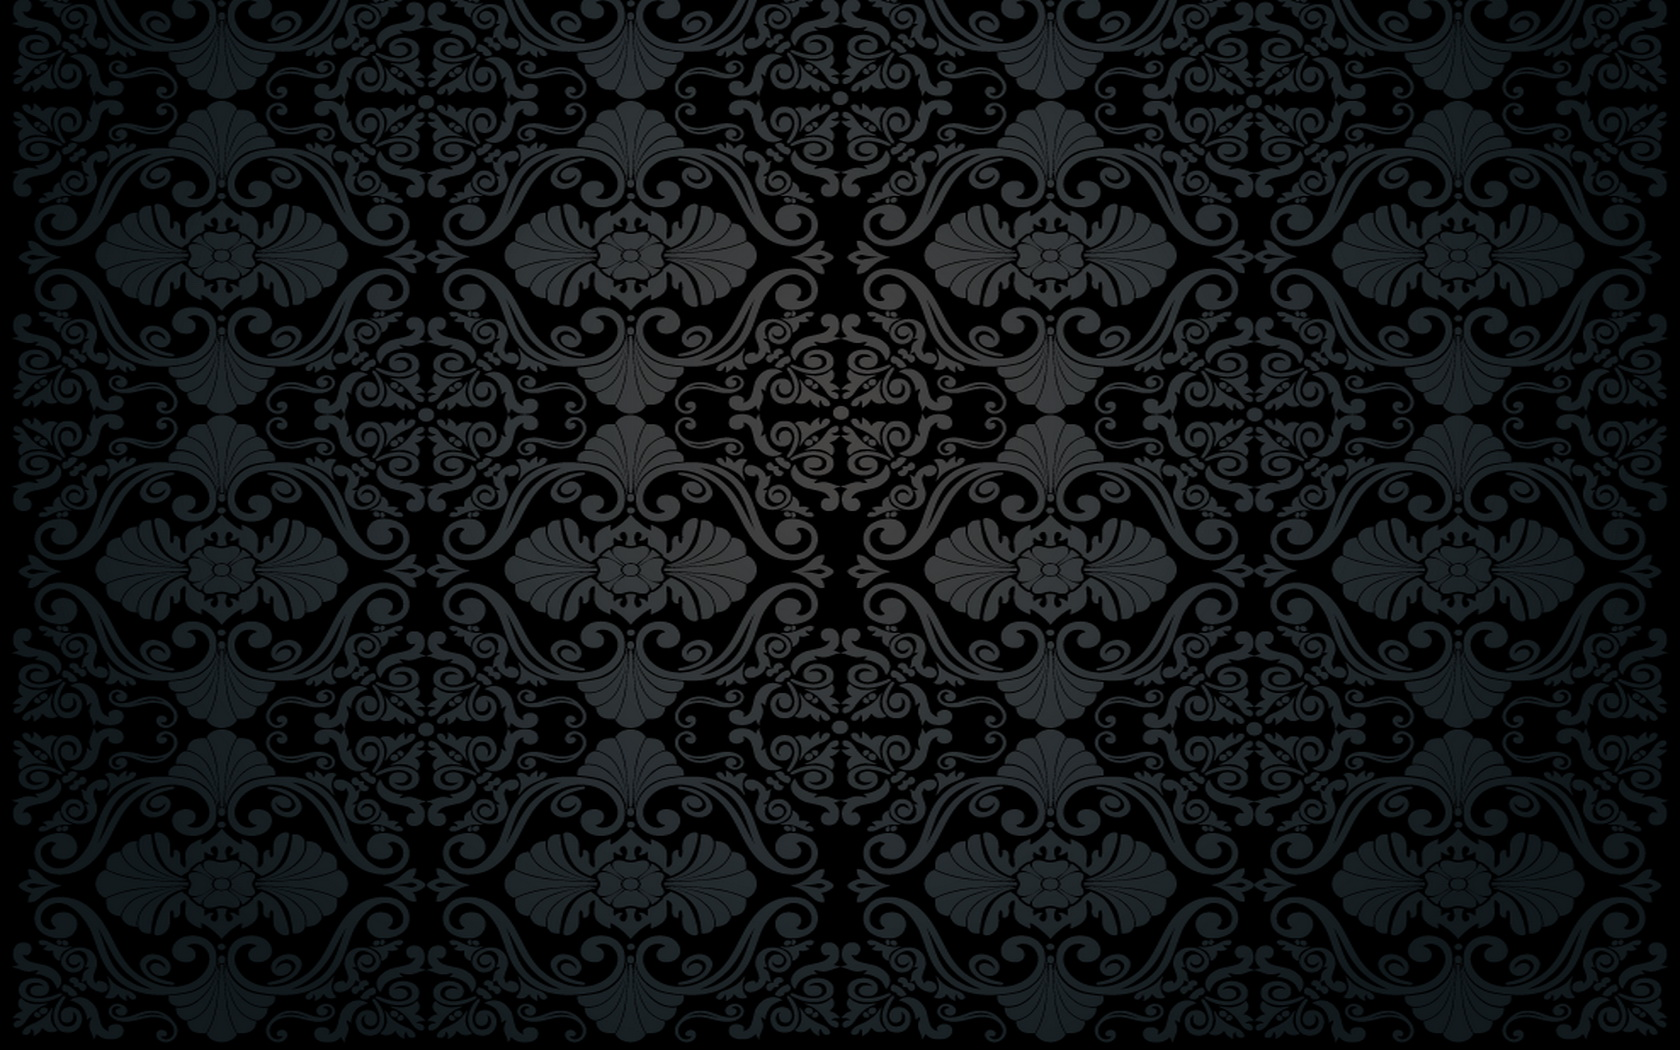 Black And Silver Damask Wallpaper 23 Free Wallpaper